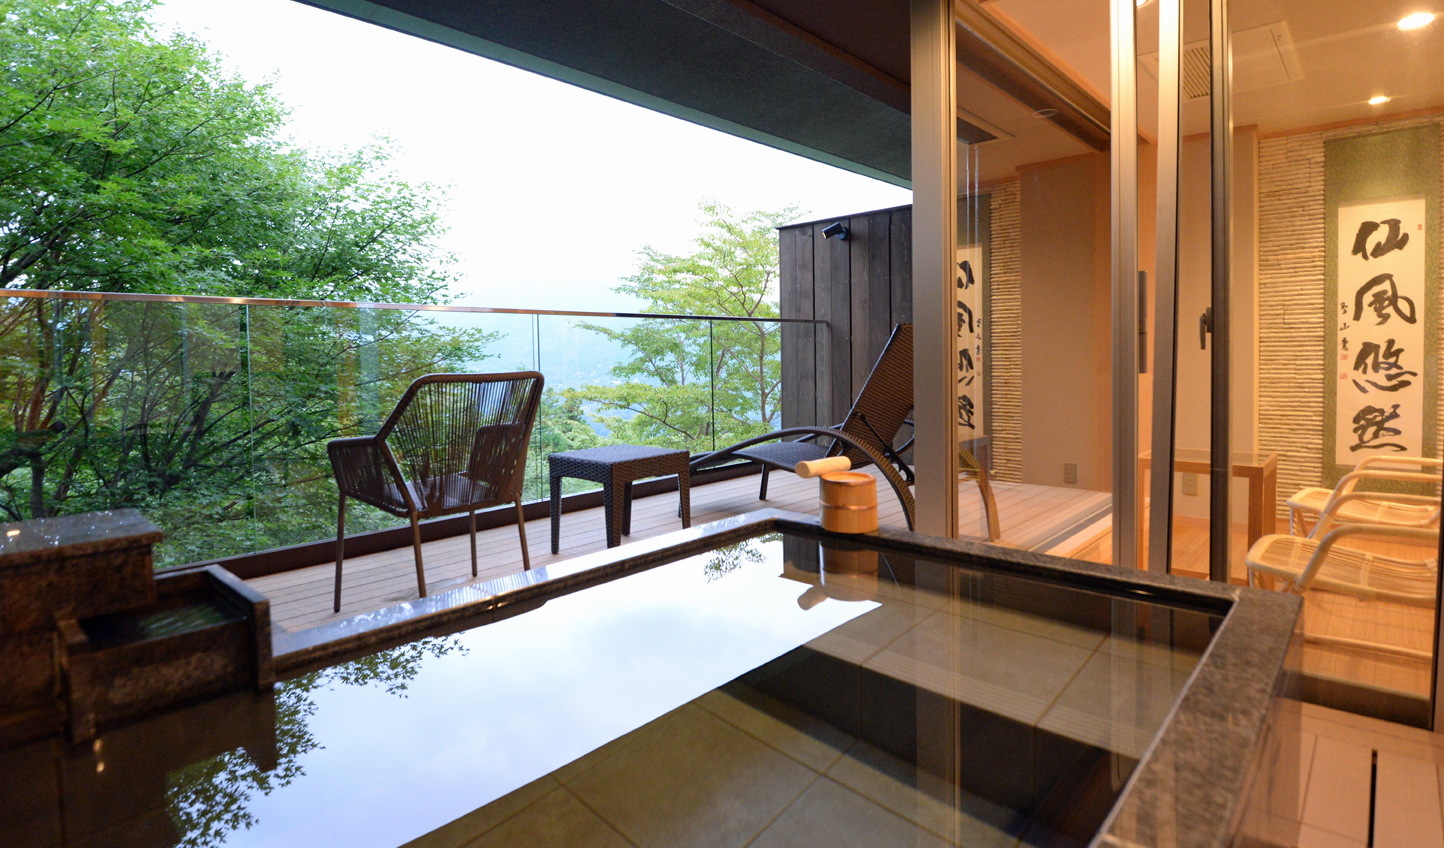 Open to the elements, slip into your onsen to a soundtrack of birdsong and the whistling of the wind